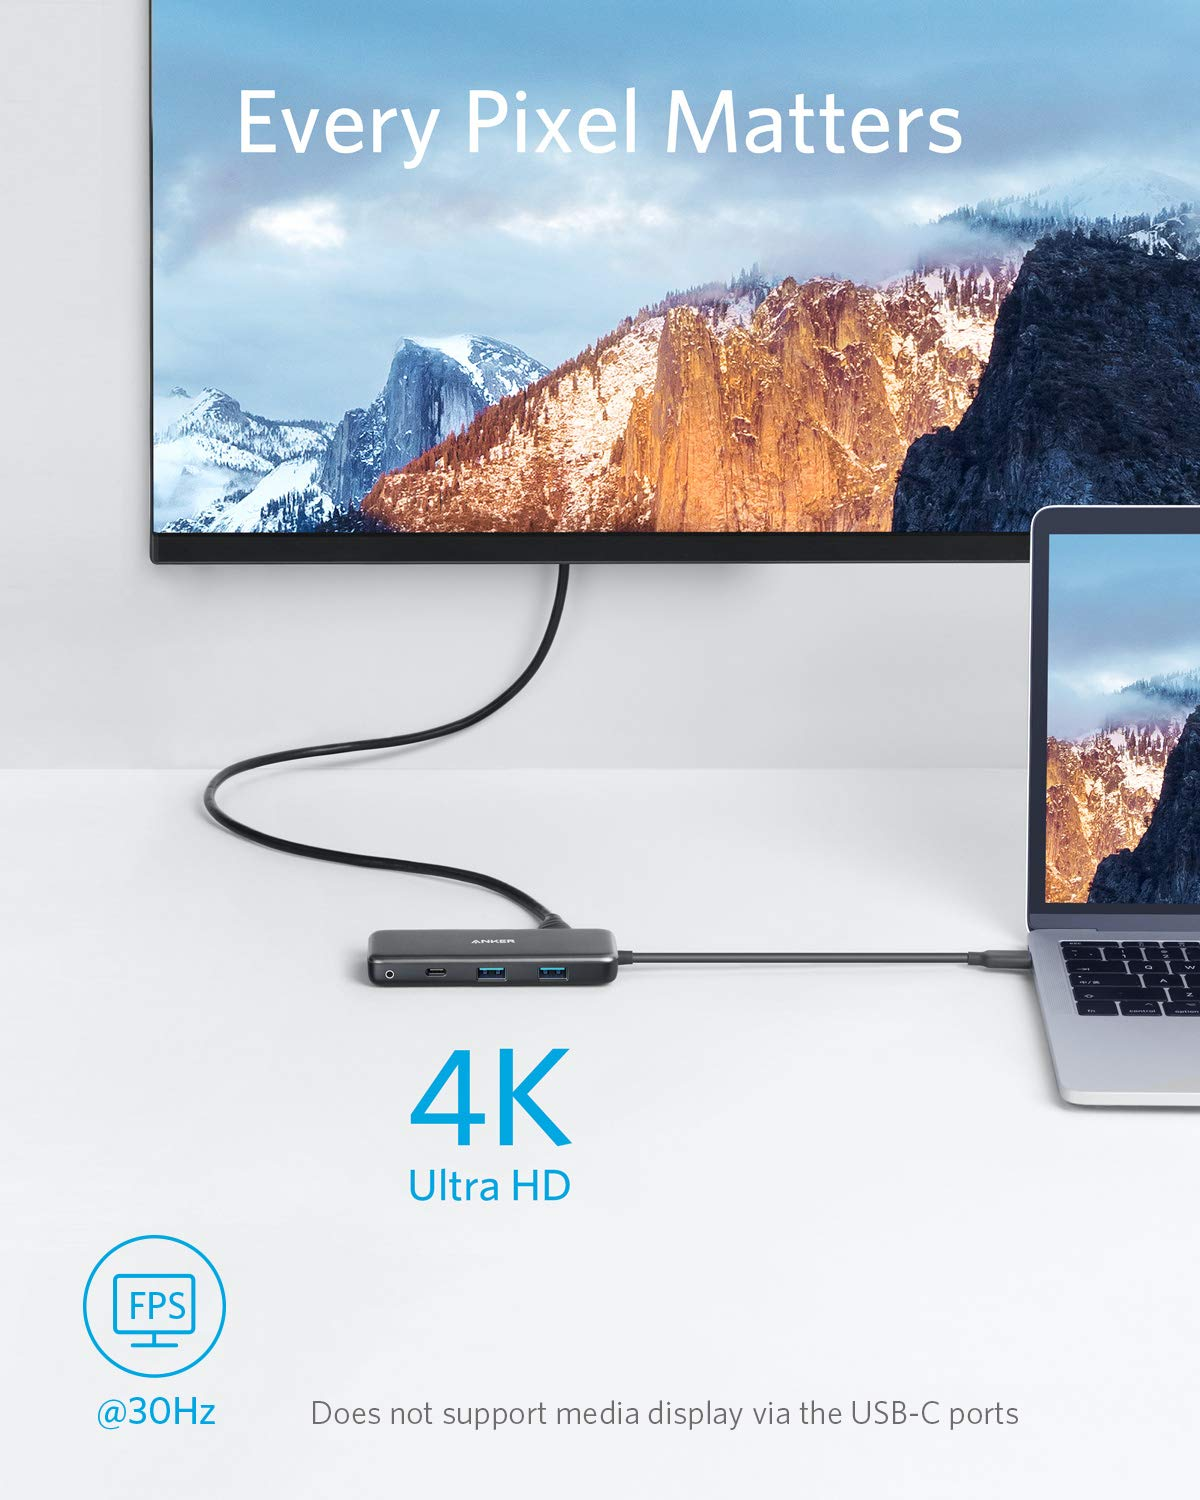 USB C Hub Adapter 7-in-1 USB C Adapter with 4K HDMI microSD and SD Card Reader Anker 2 USB 3.0 Ports Pixelbook XPS Power Delivery USB C Data Port for MacBook Pro Upgraded